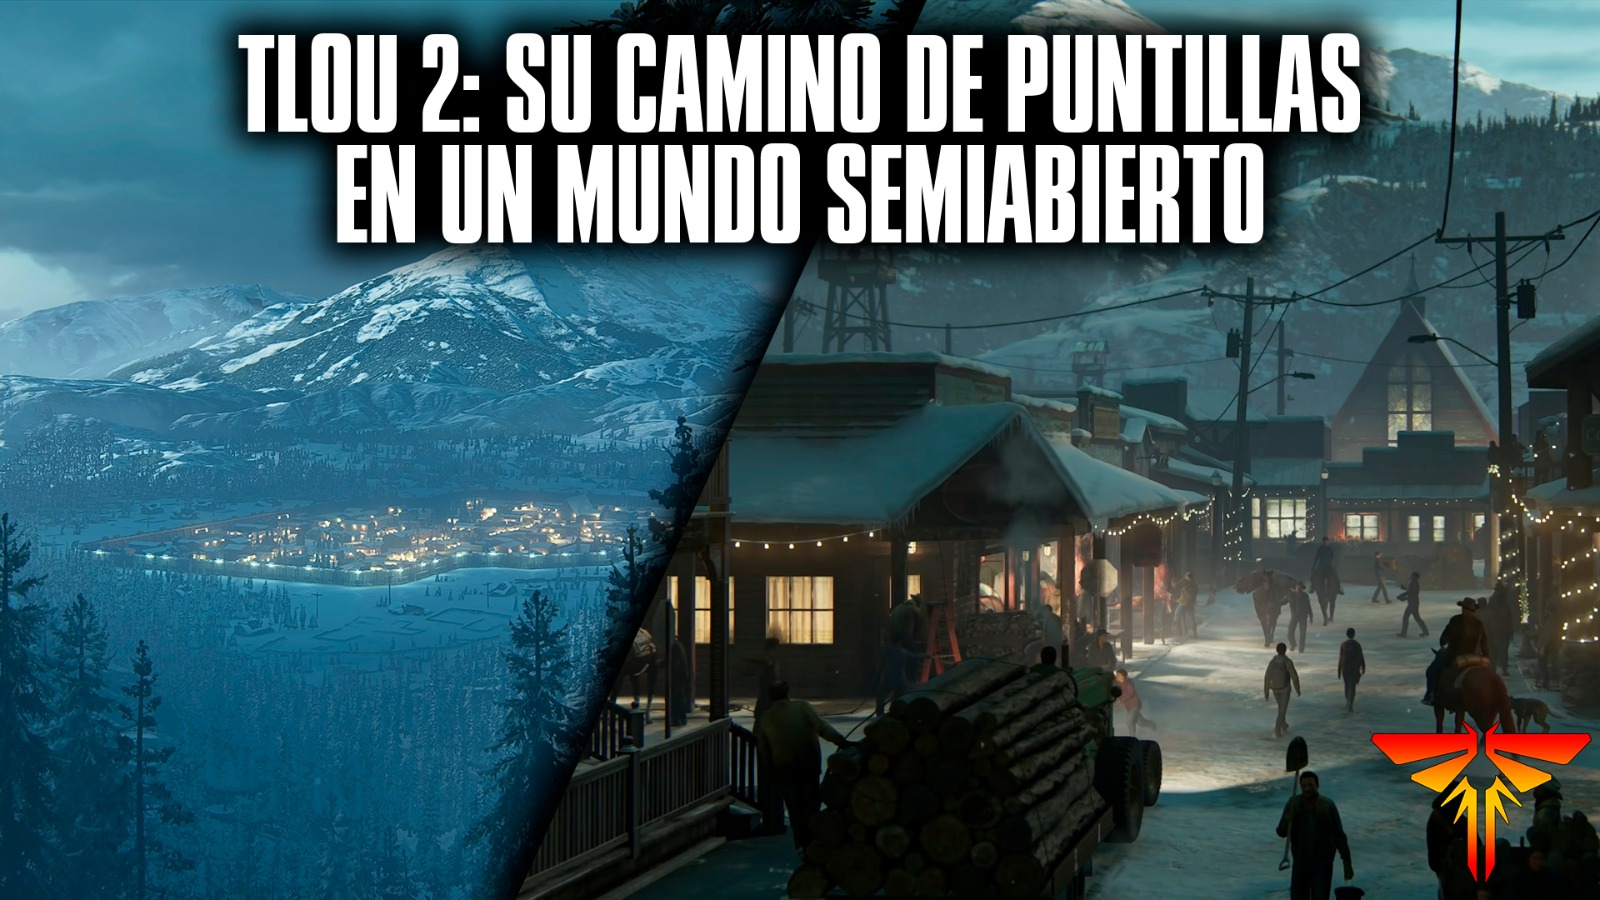 The Last of Us 2 su camino de puntillas en un mundo semiabierto